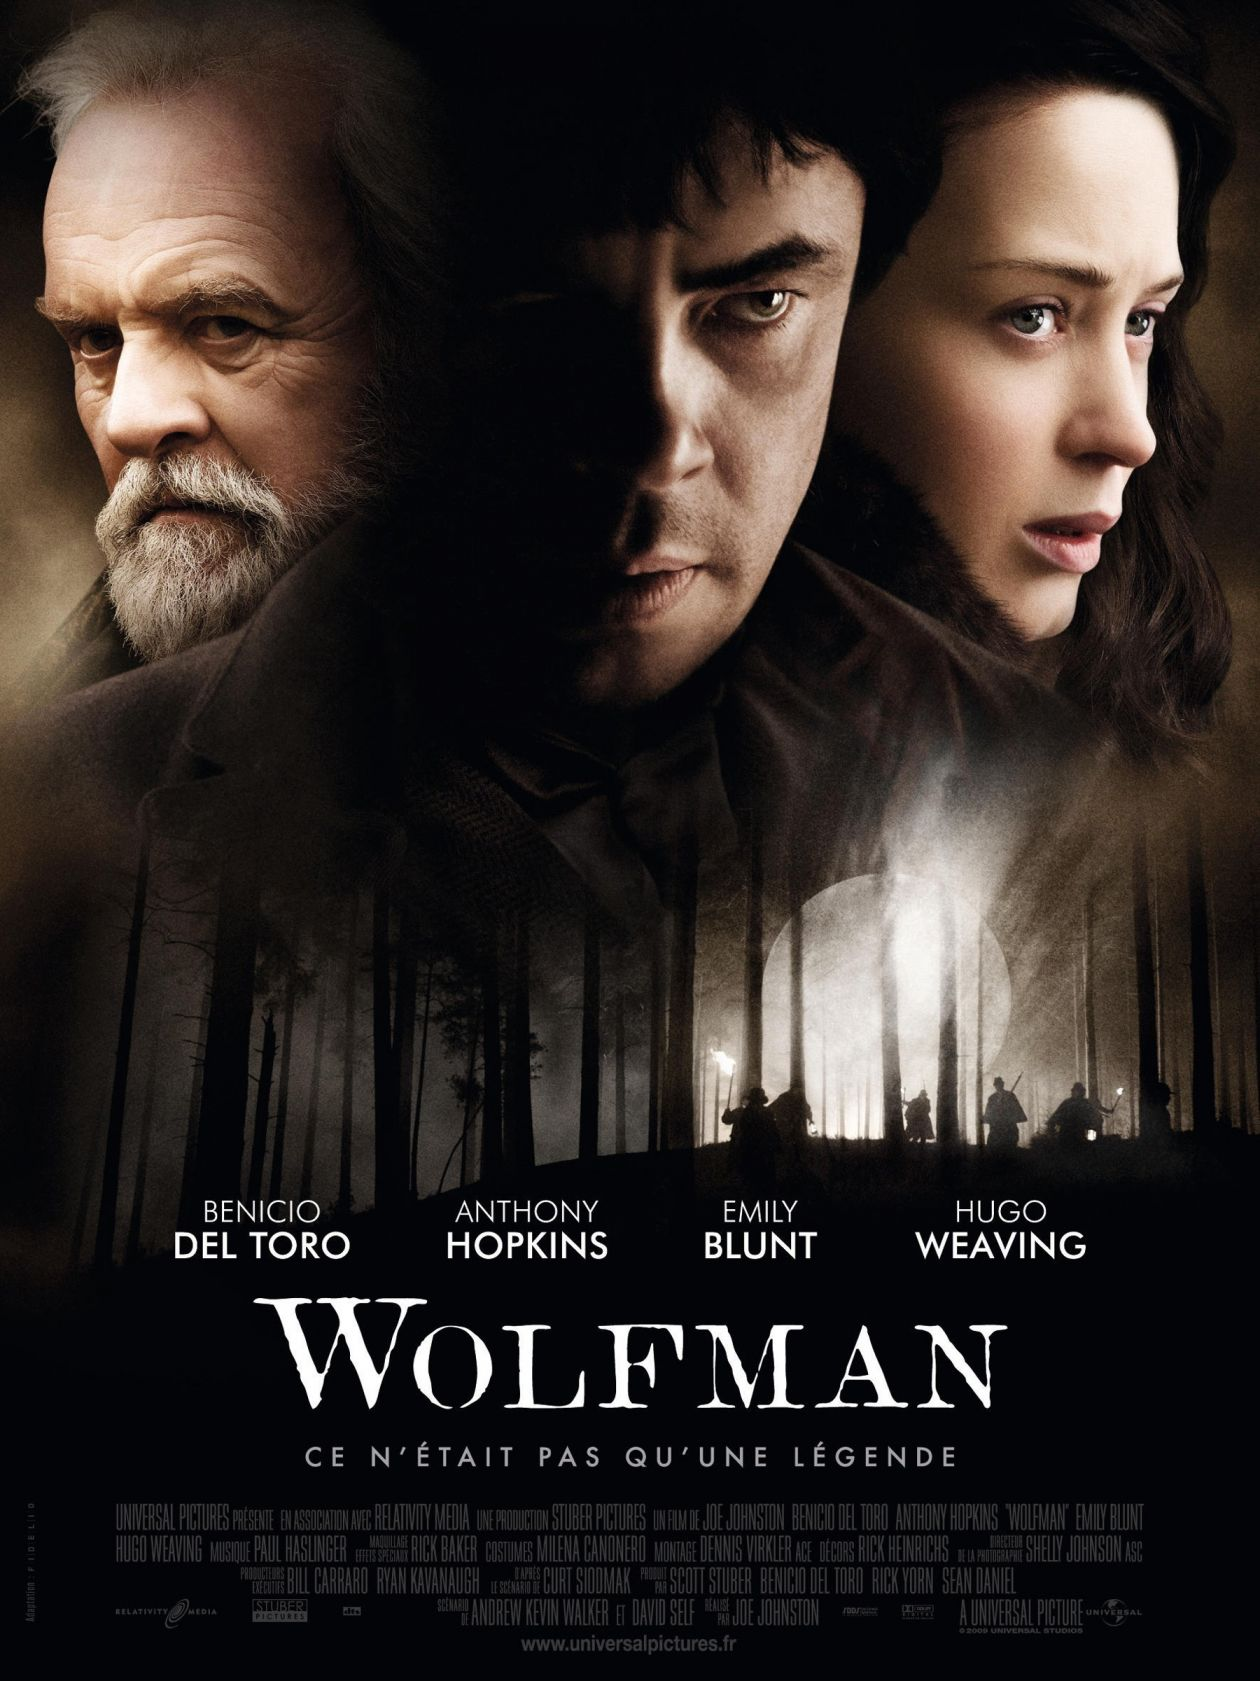 Emily Blunt actress / The Wolfman / Joe Johnston 2010 Movie Poster Affiche film